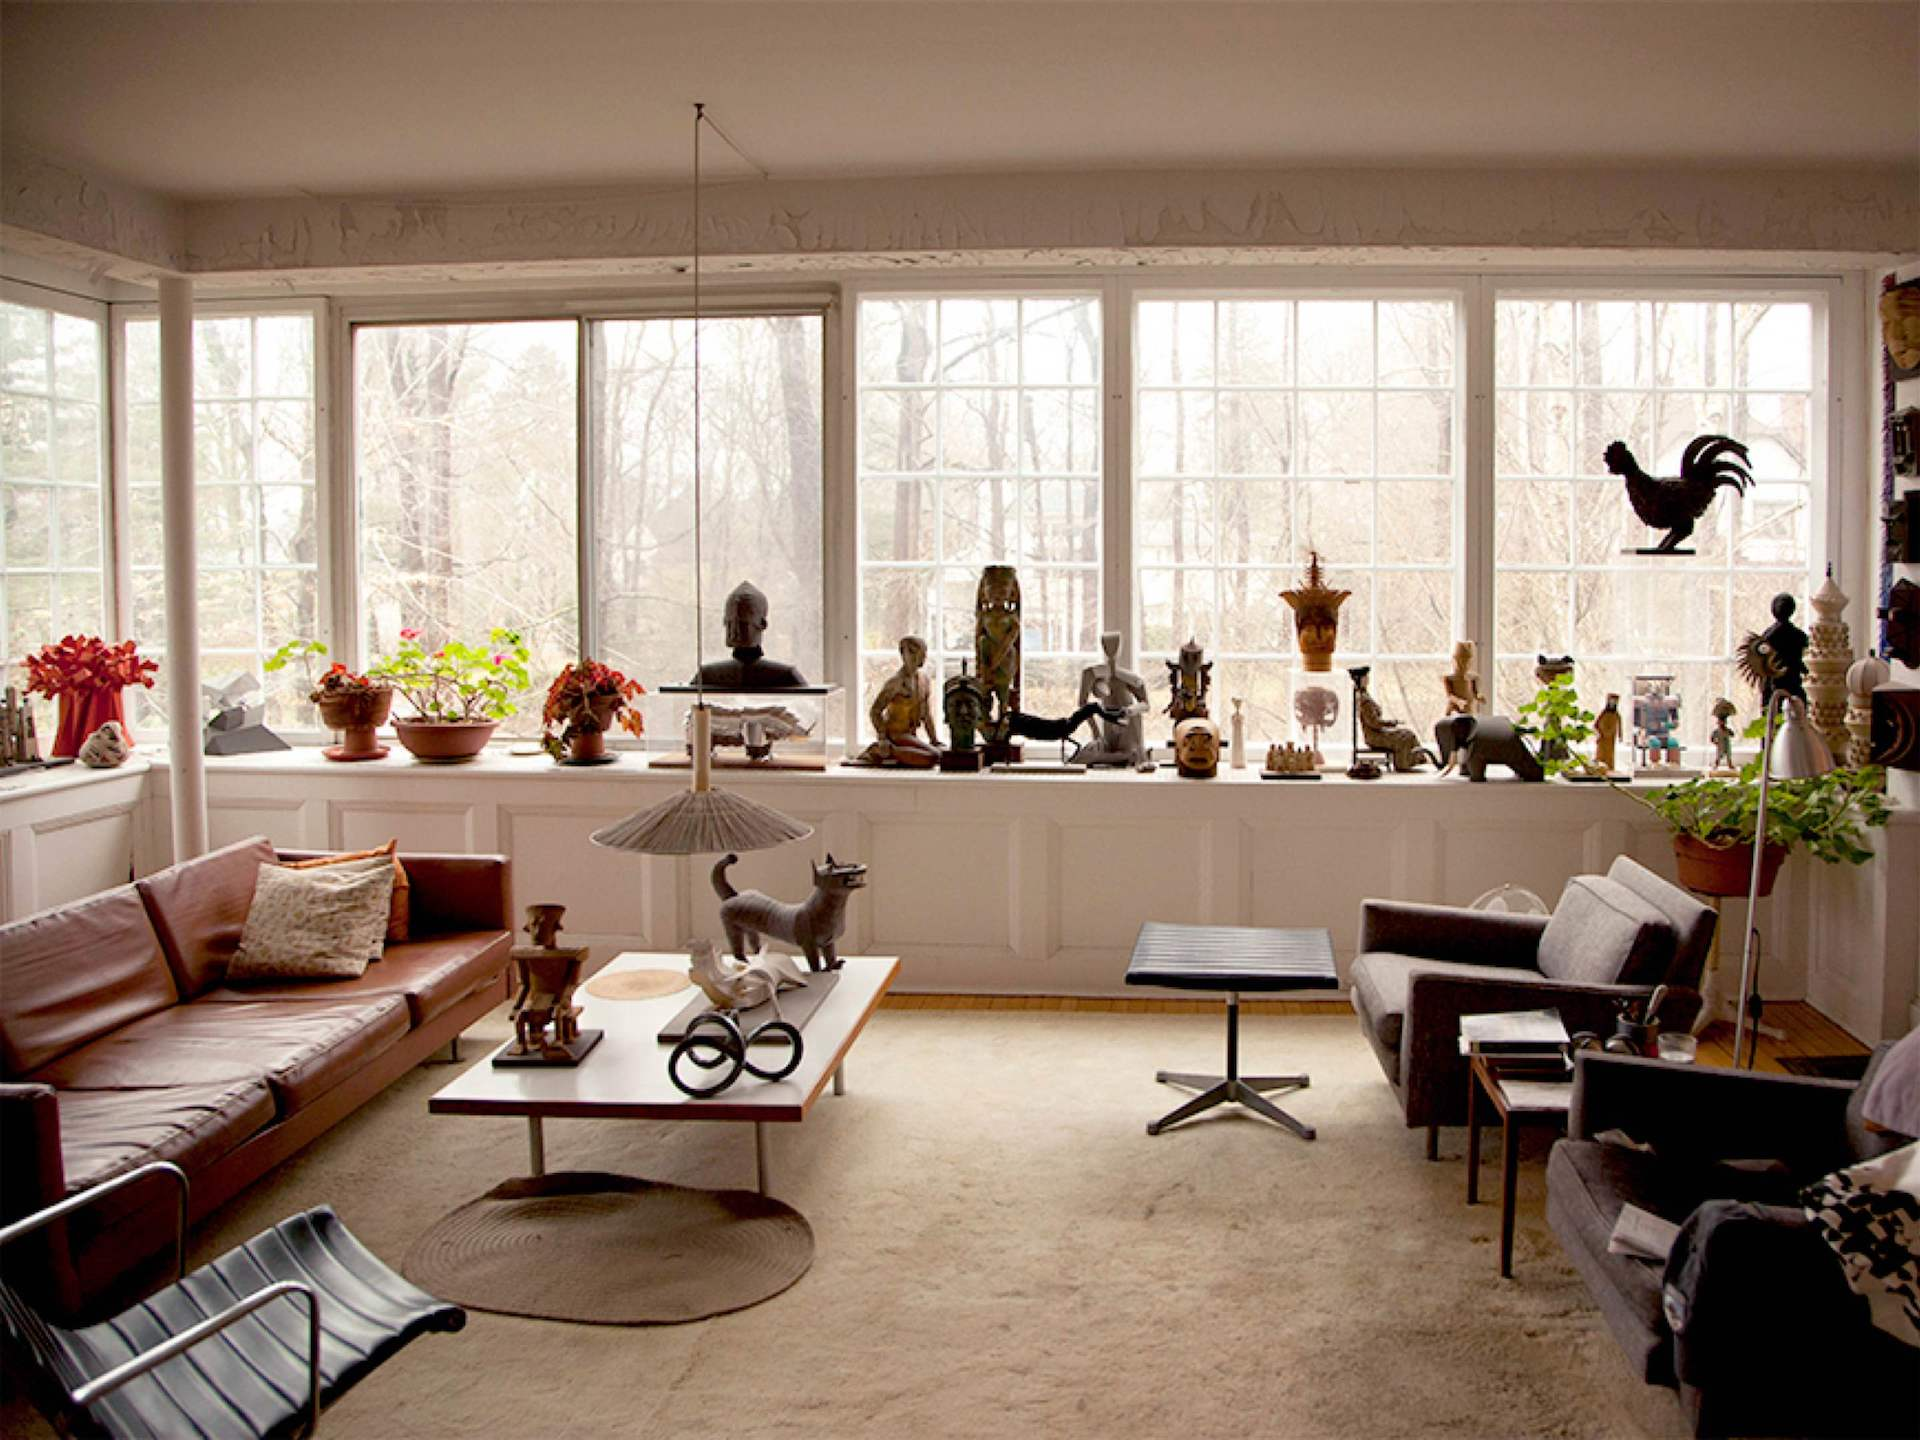 Irving Harper's New York home, Image courtesy of Why Magazine and Herman Miller.